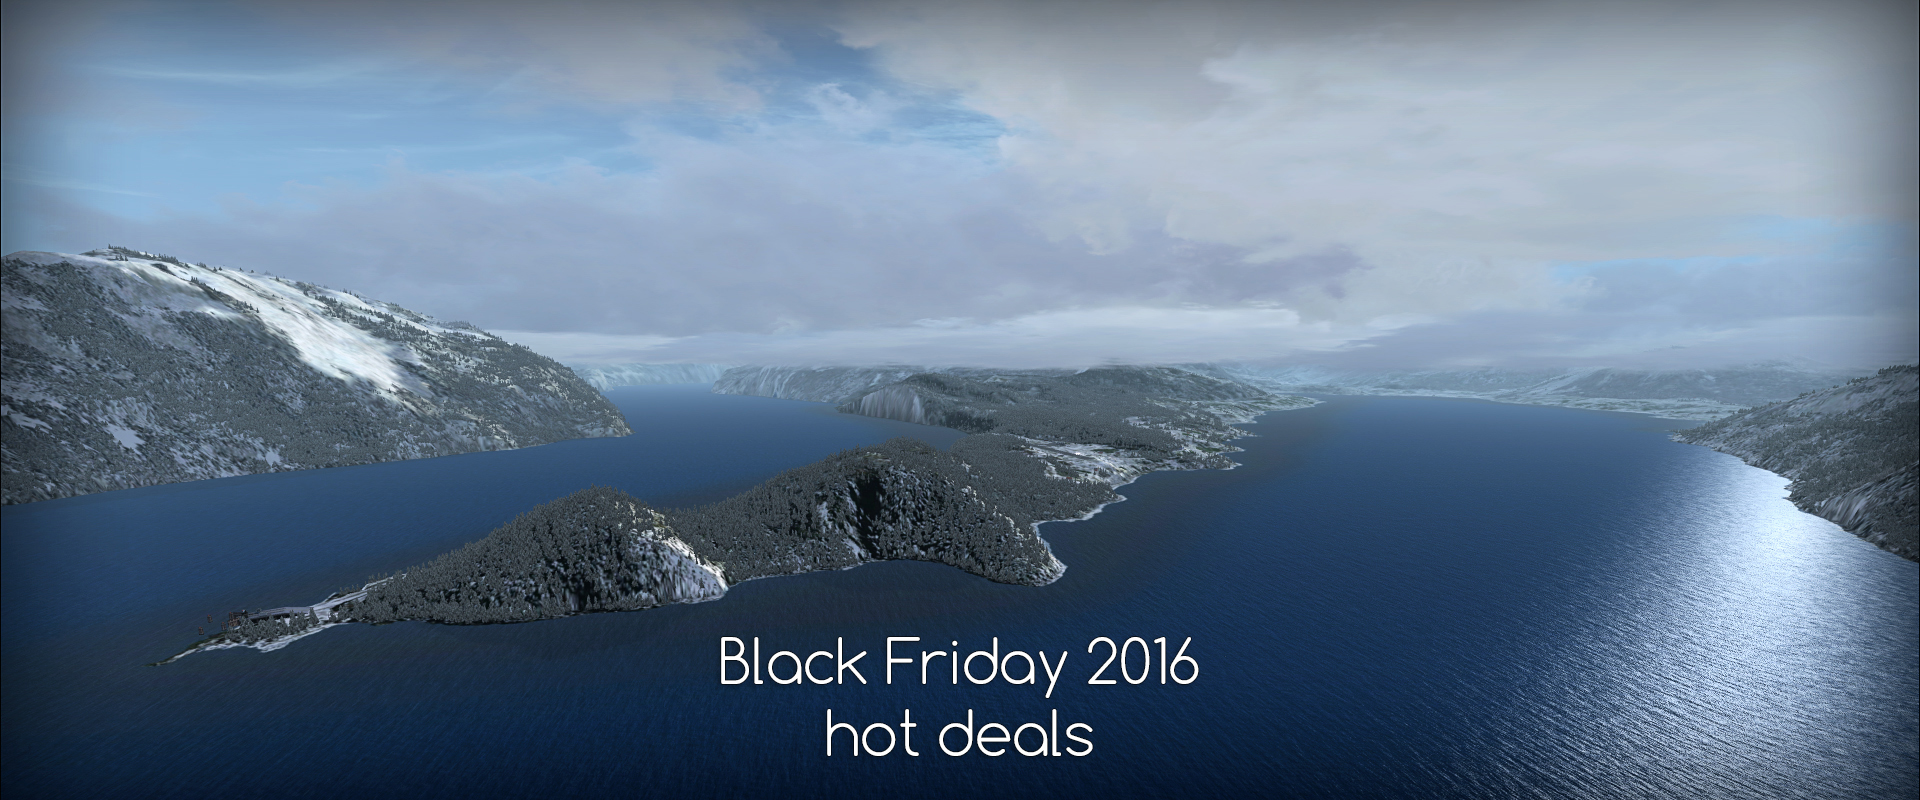 Black Friday 2016 - hot deals / recommendations